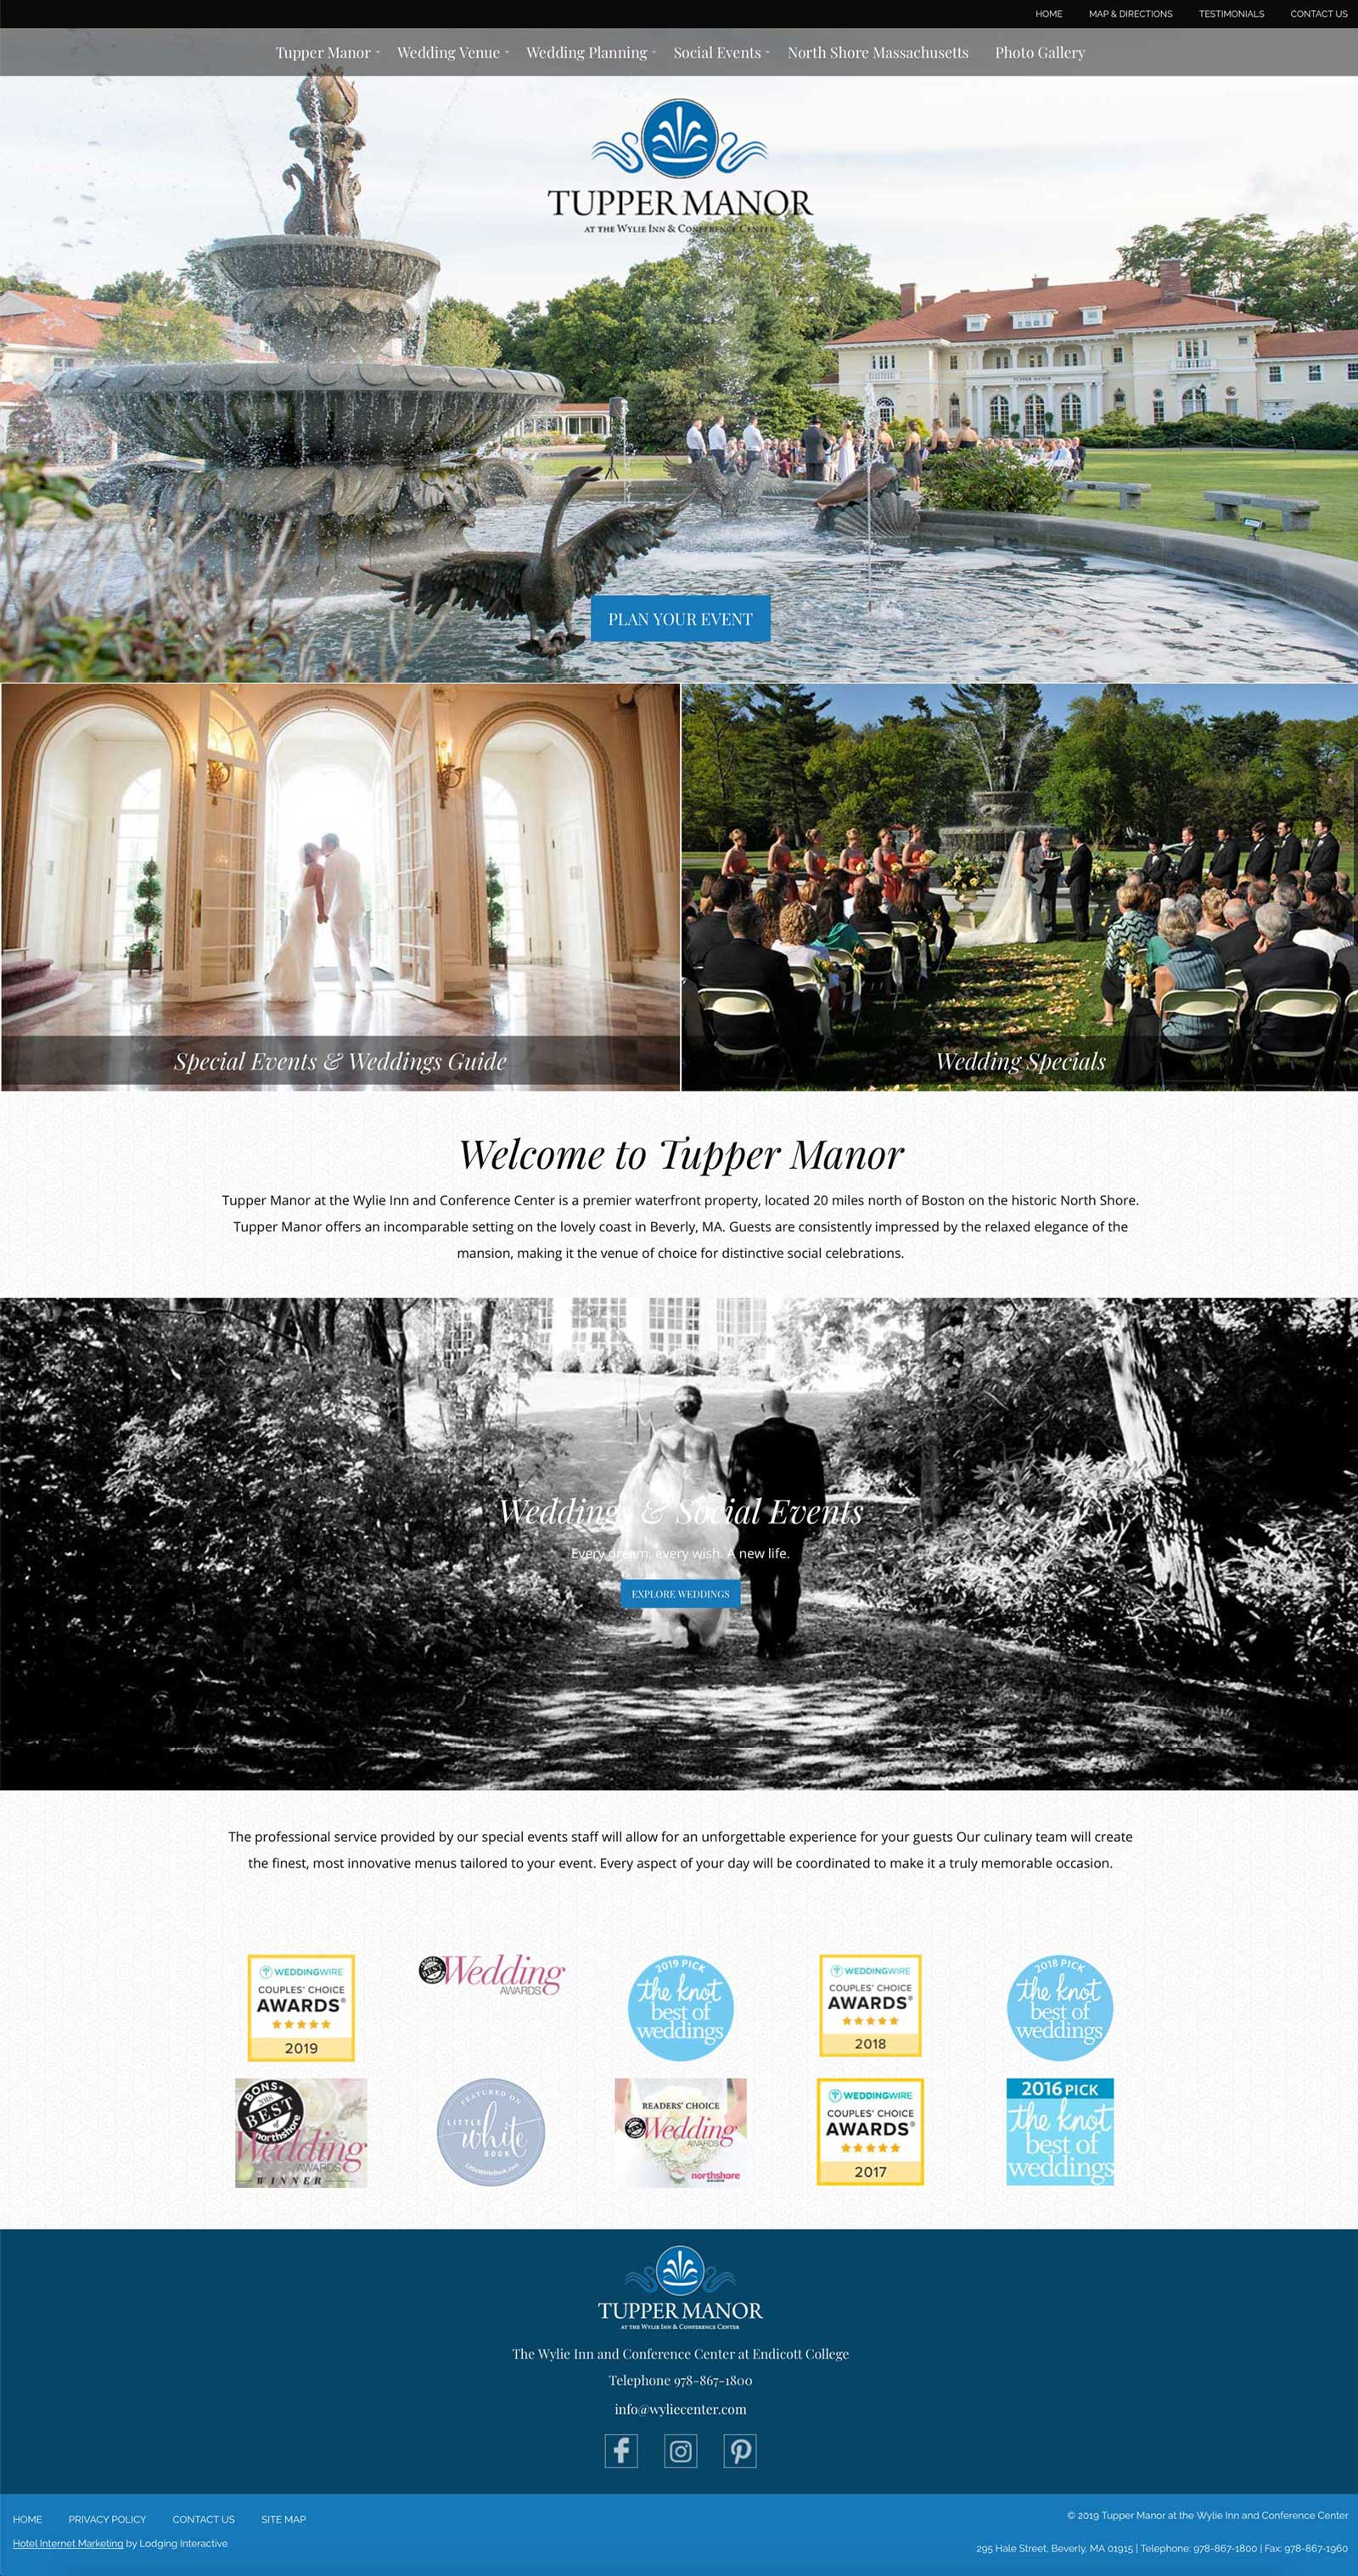 Tupper Manor homepage